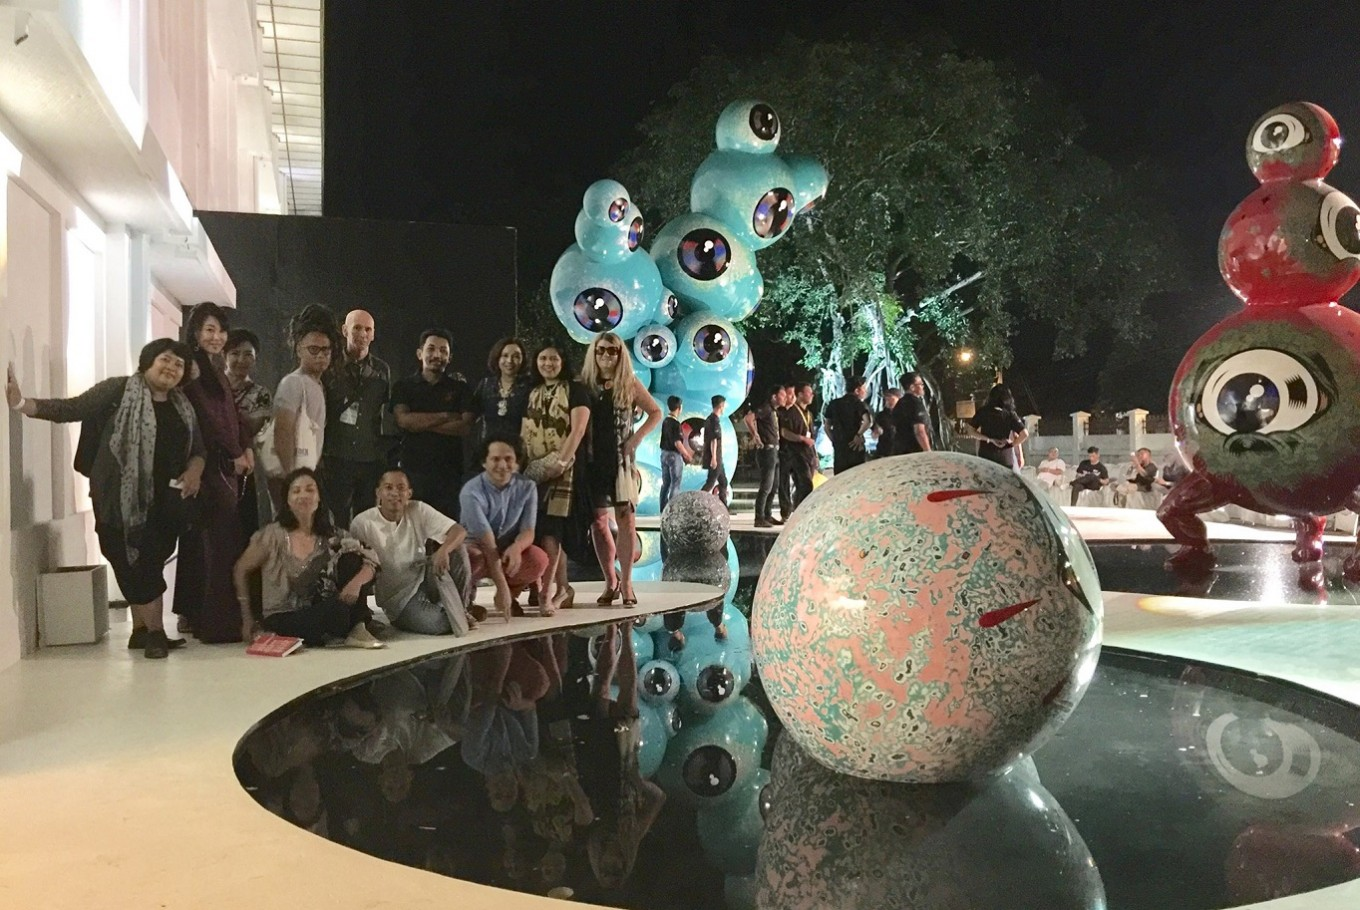 Indonesian artists, including Wedhar Riyadi, along with art lovers in front of Riyadi's 'Floating Eyes'.